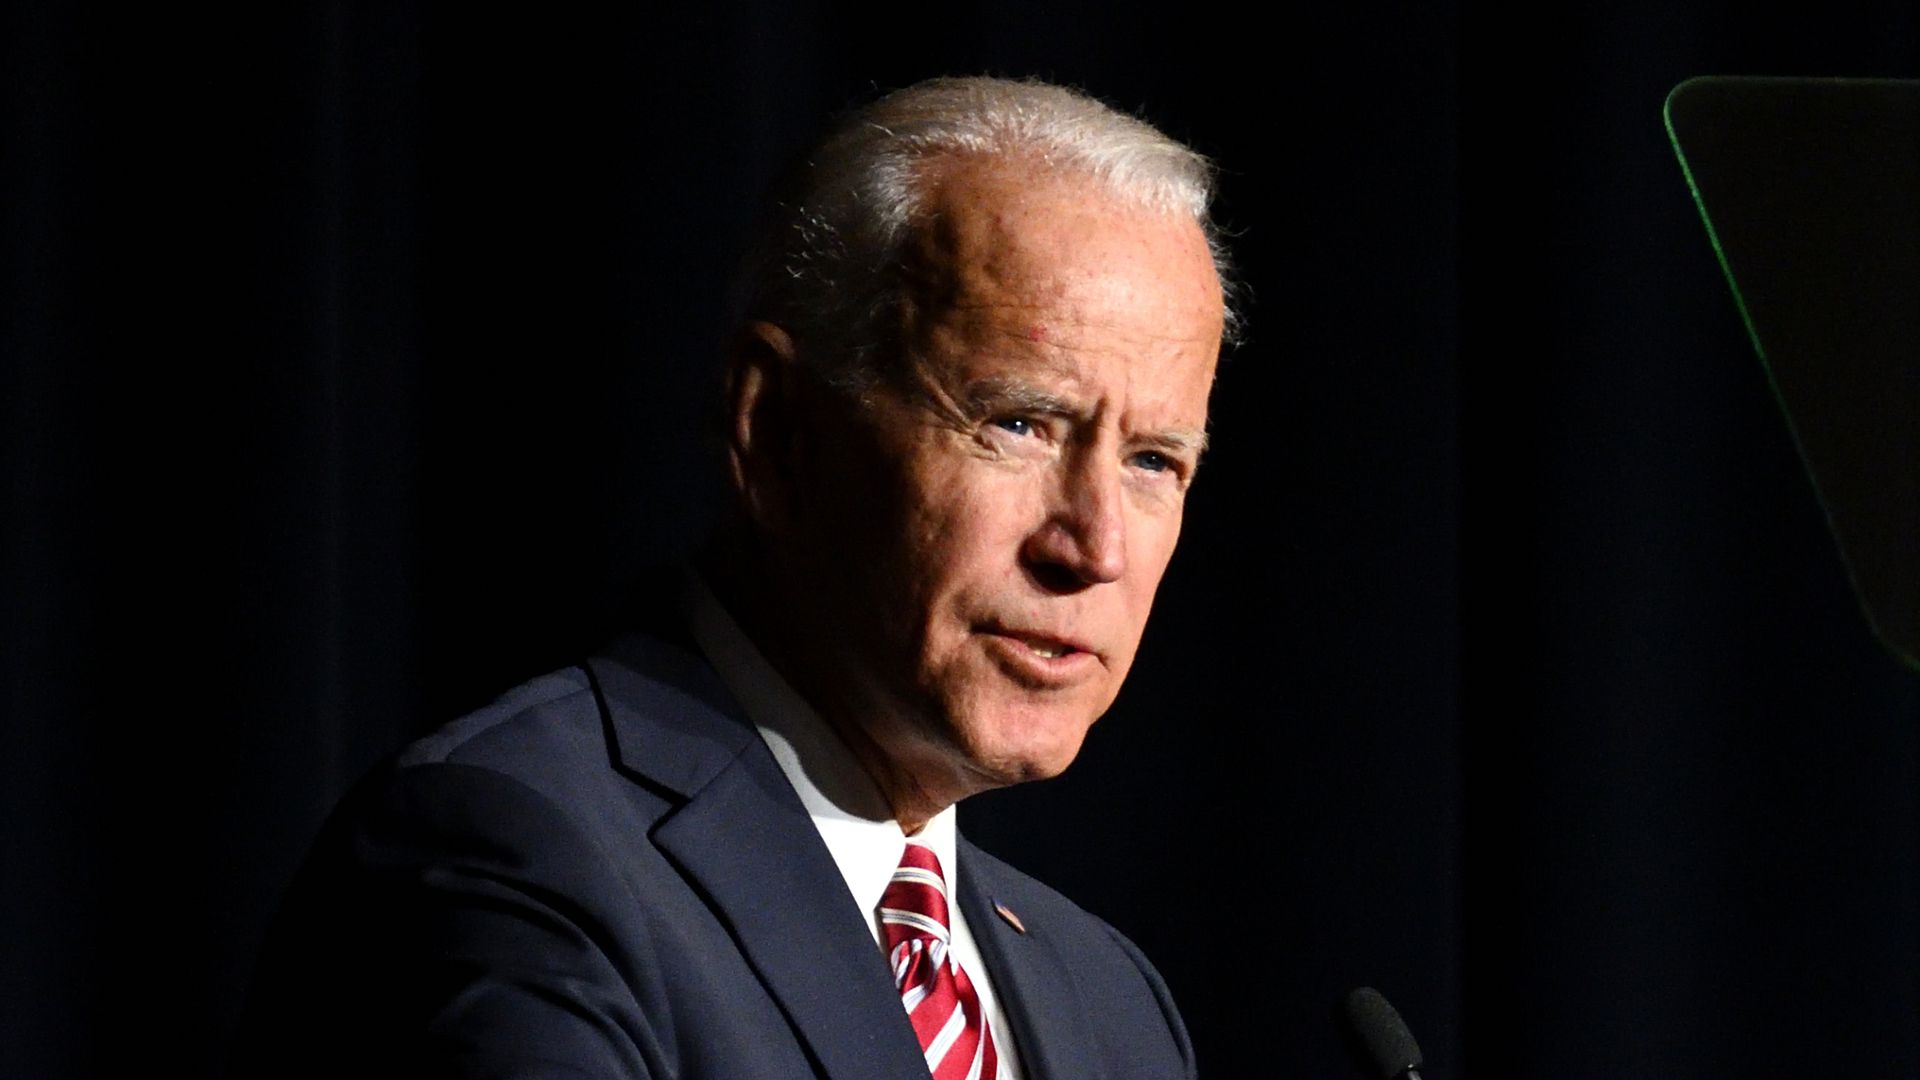 Former Vice President Biden has been accused by 3 other women of inappropriate behavior.